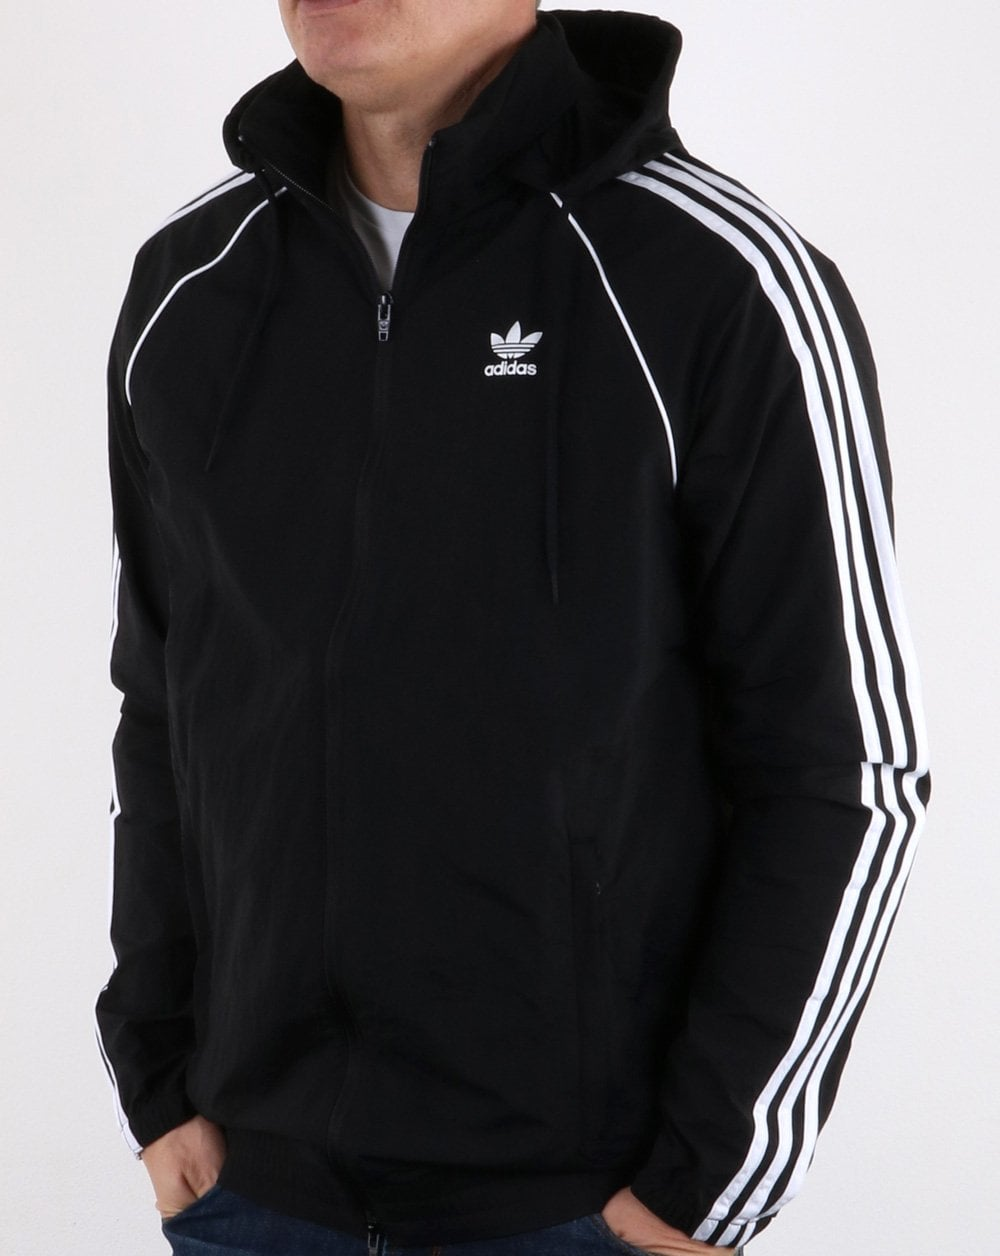 Adidas Originals Superstar Windbreaker Black